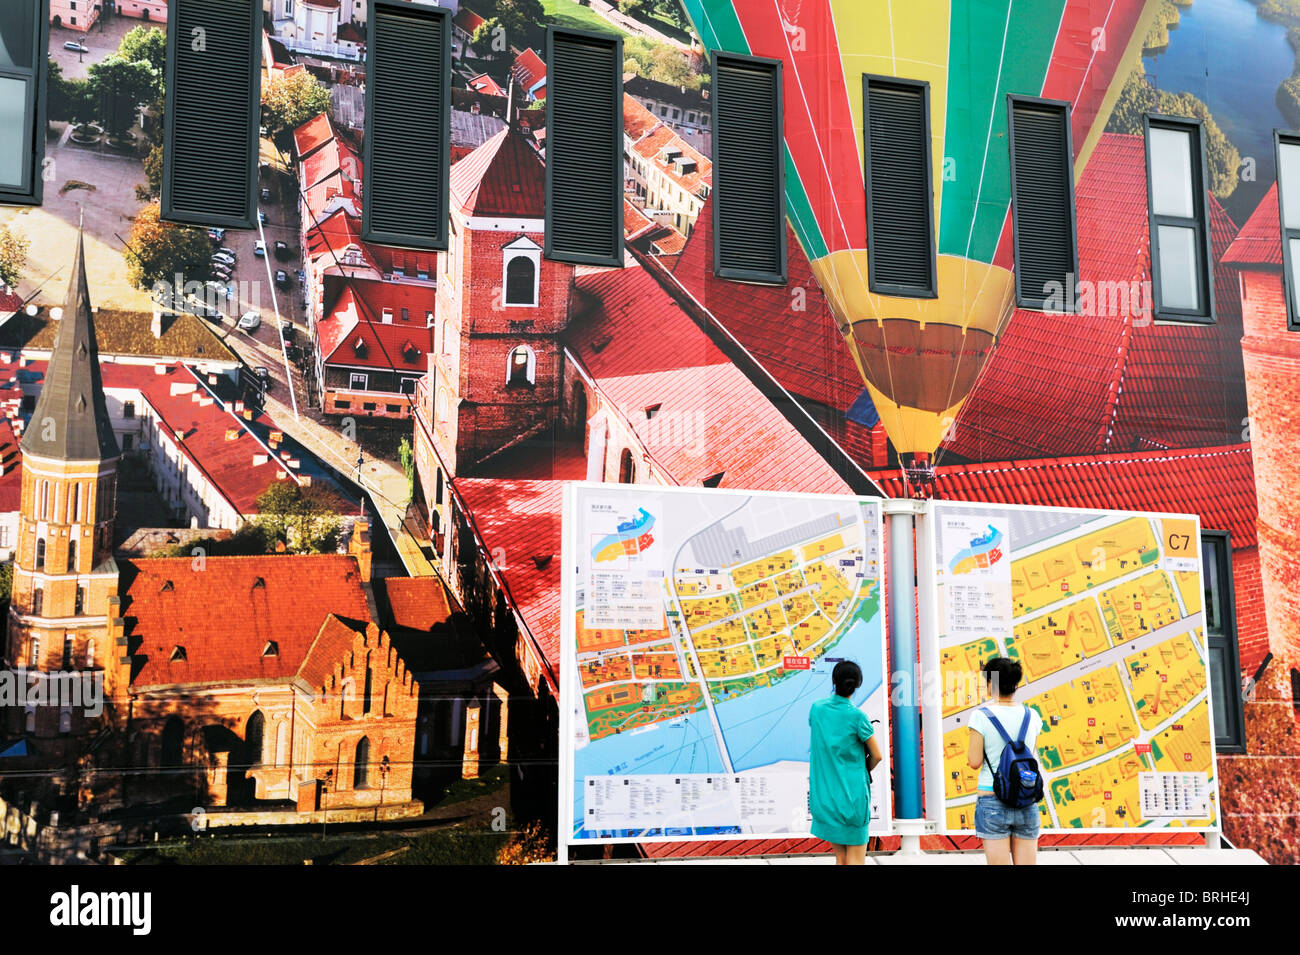 Shanghai World Expo 2010, China. Visitors looking at site map and mural - Stock Image